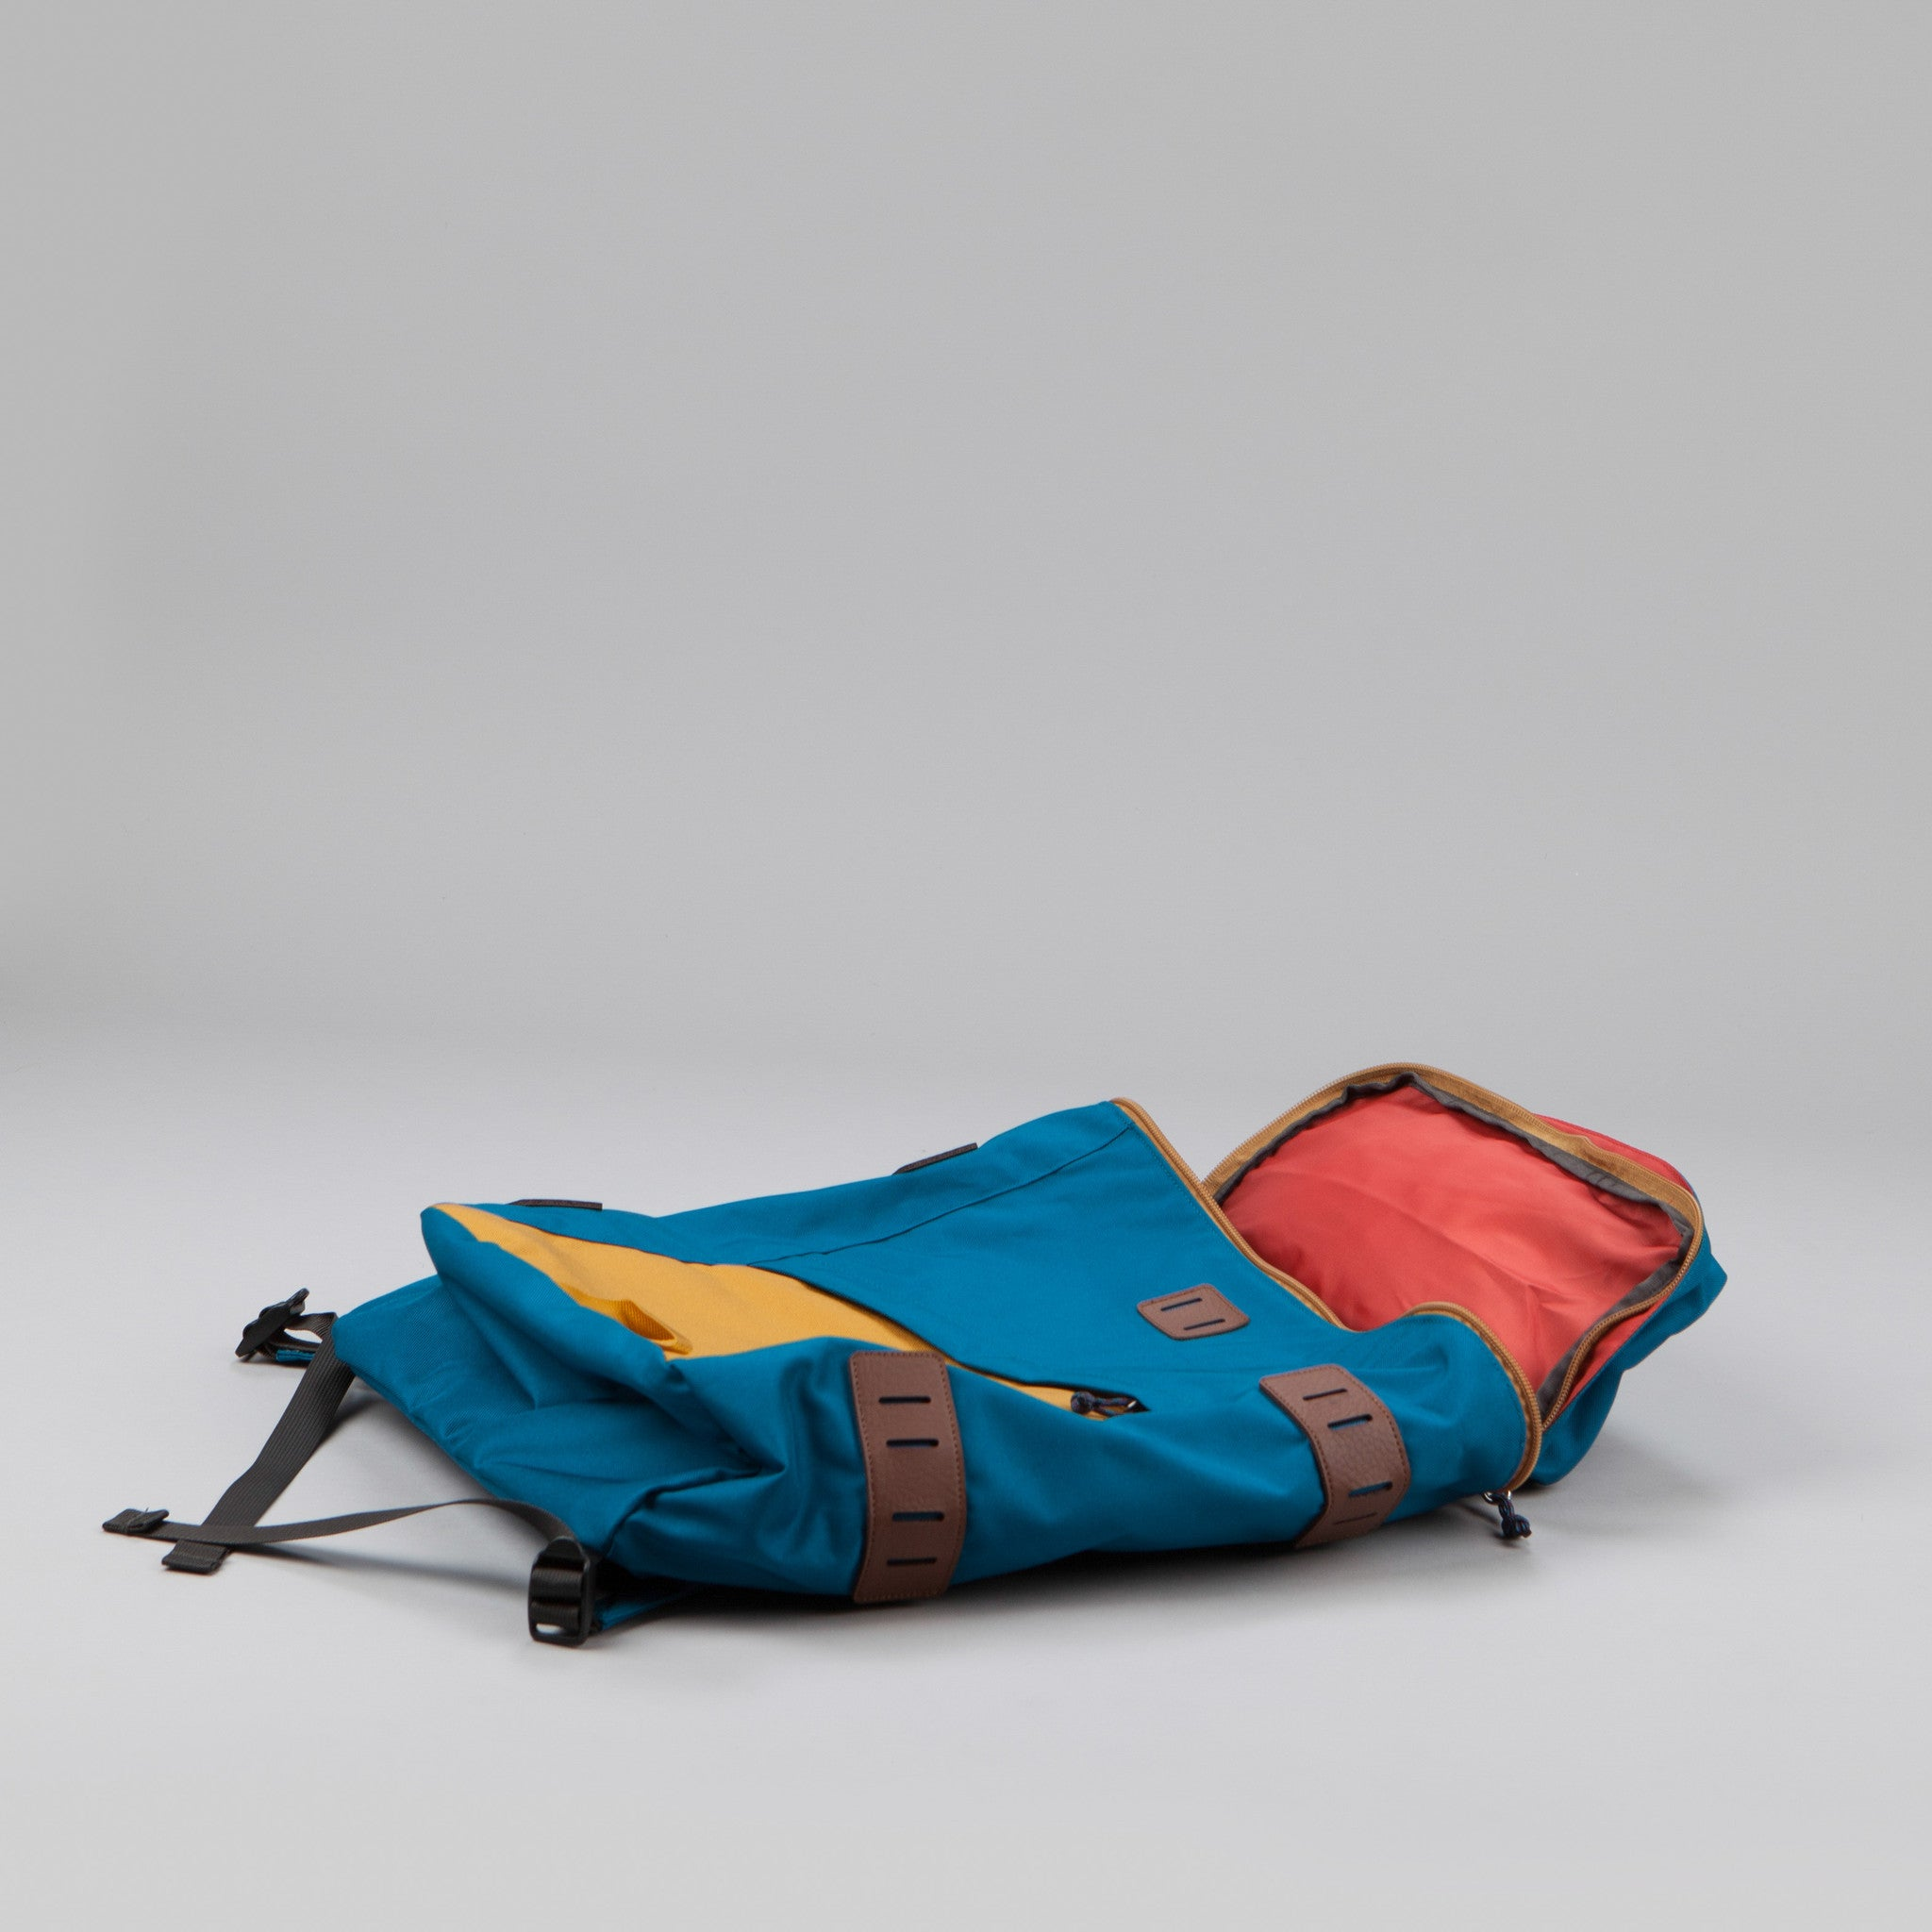 Patagonia Toromiro Backpack - Underwater Blue